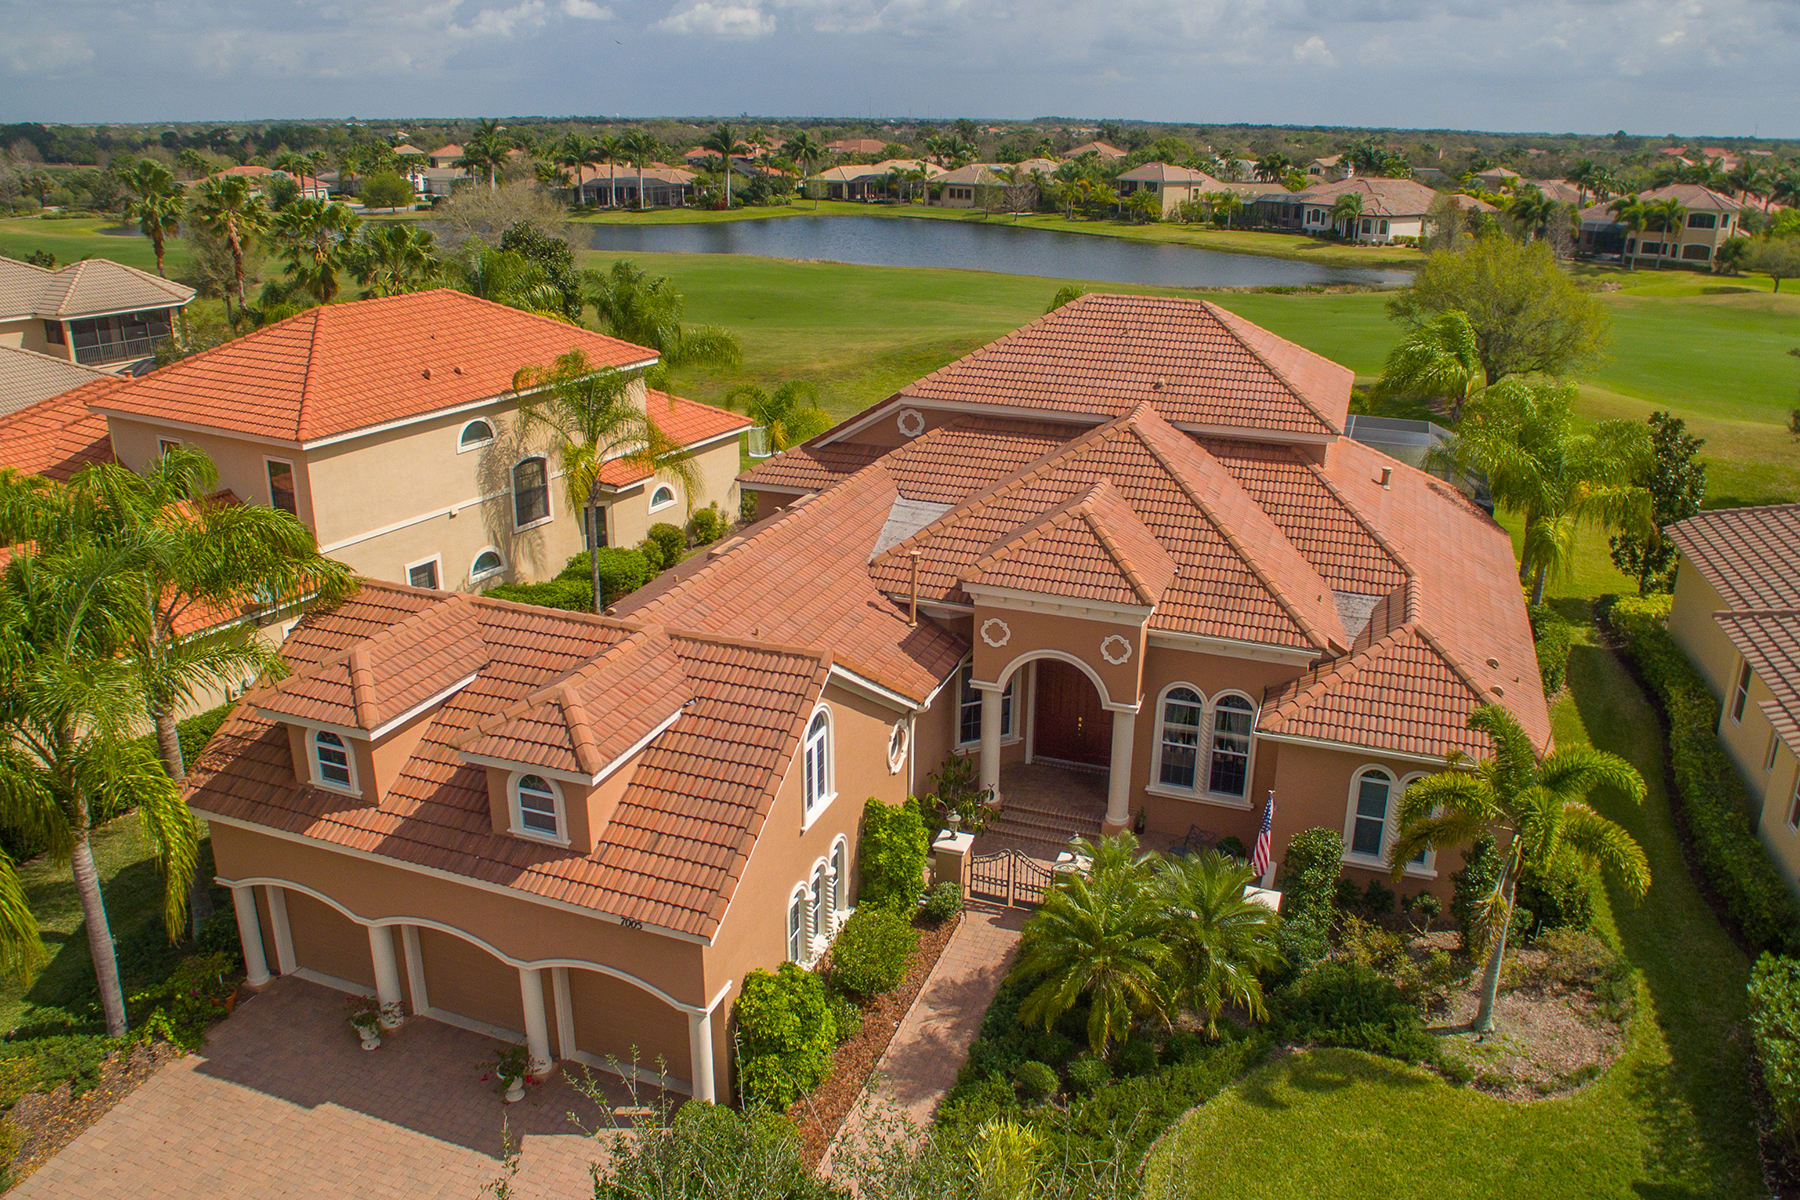 Single Family Home for Sale at LAKEWOOD RANCH COUNTRY CLUB 7005 Dominion Ln Lakewood Ranch, Florida, 34202 United States